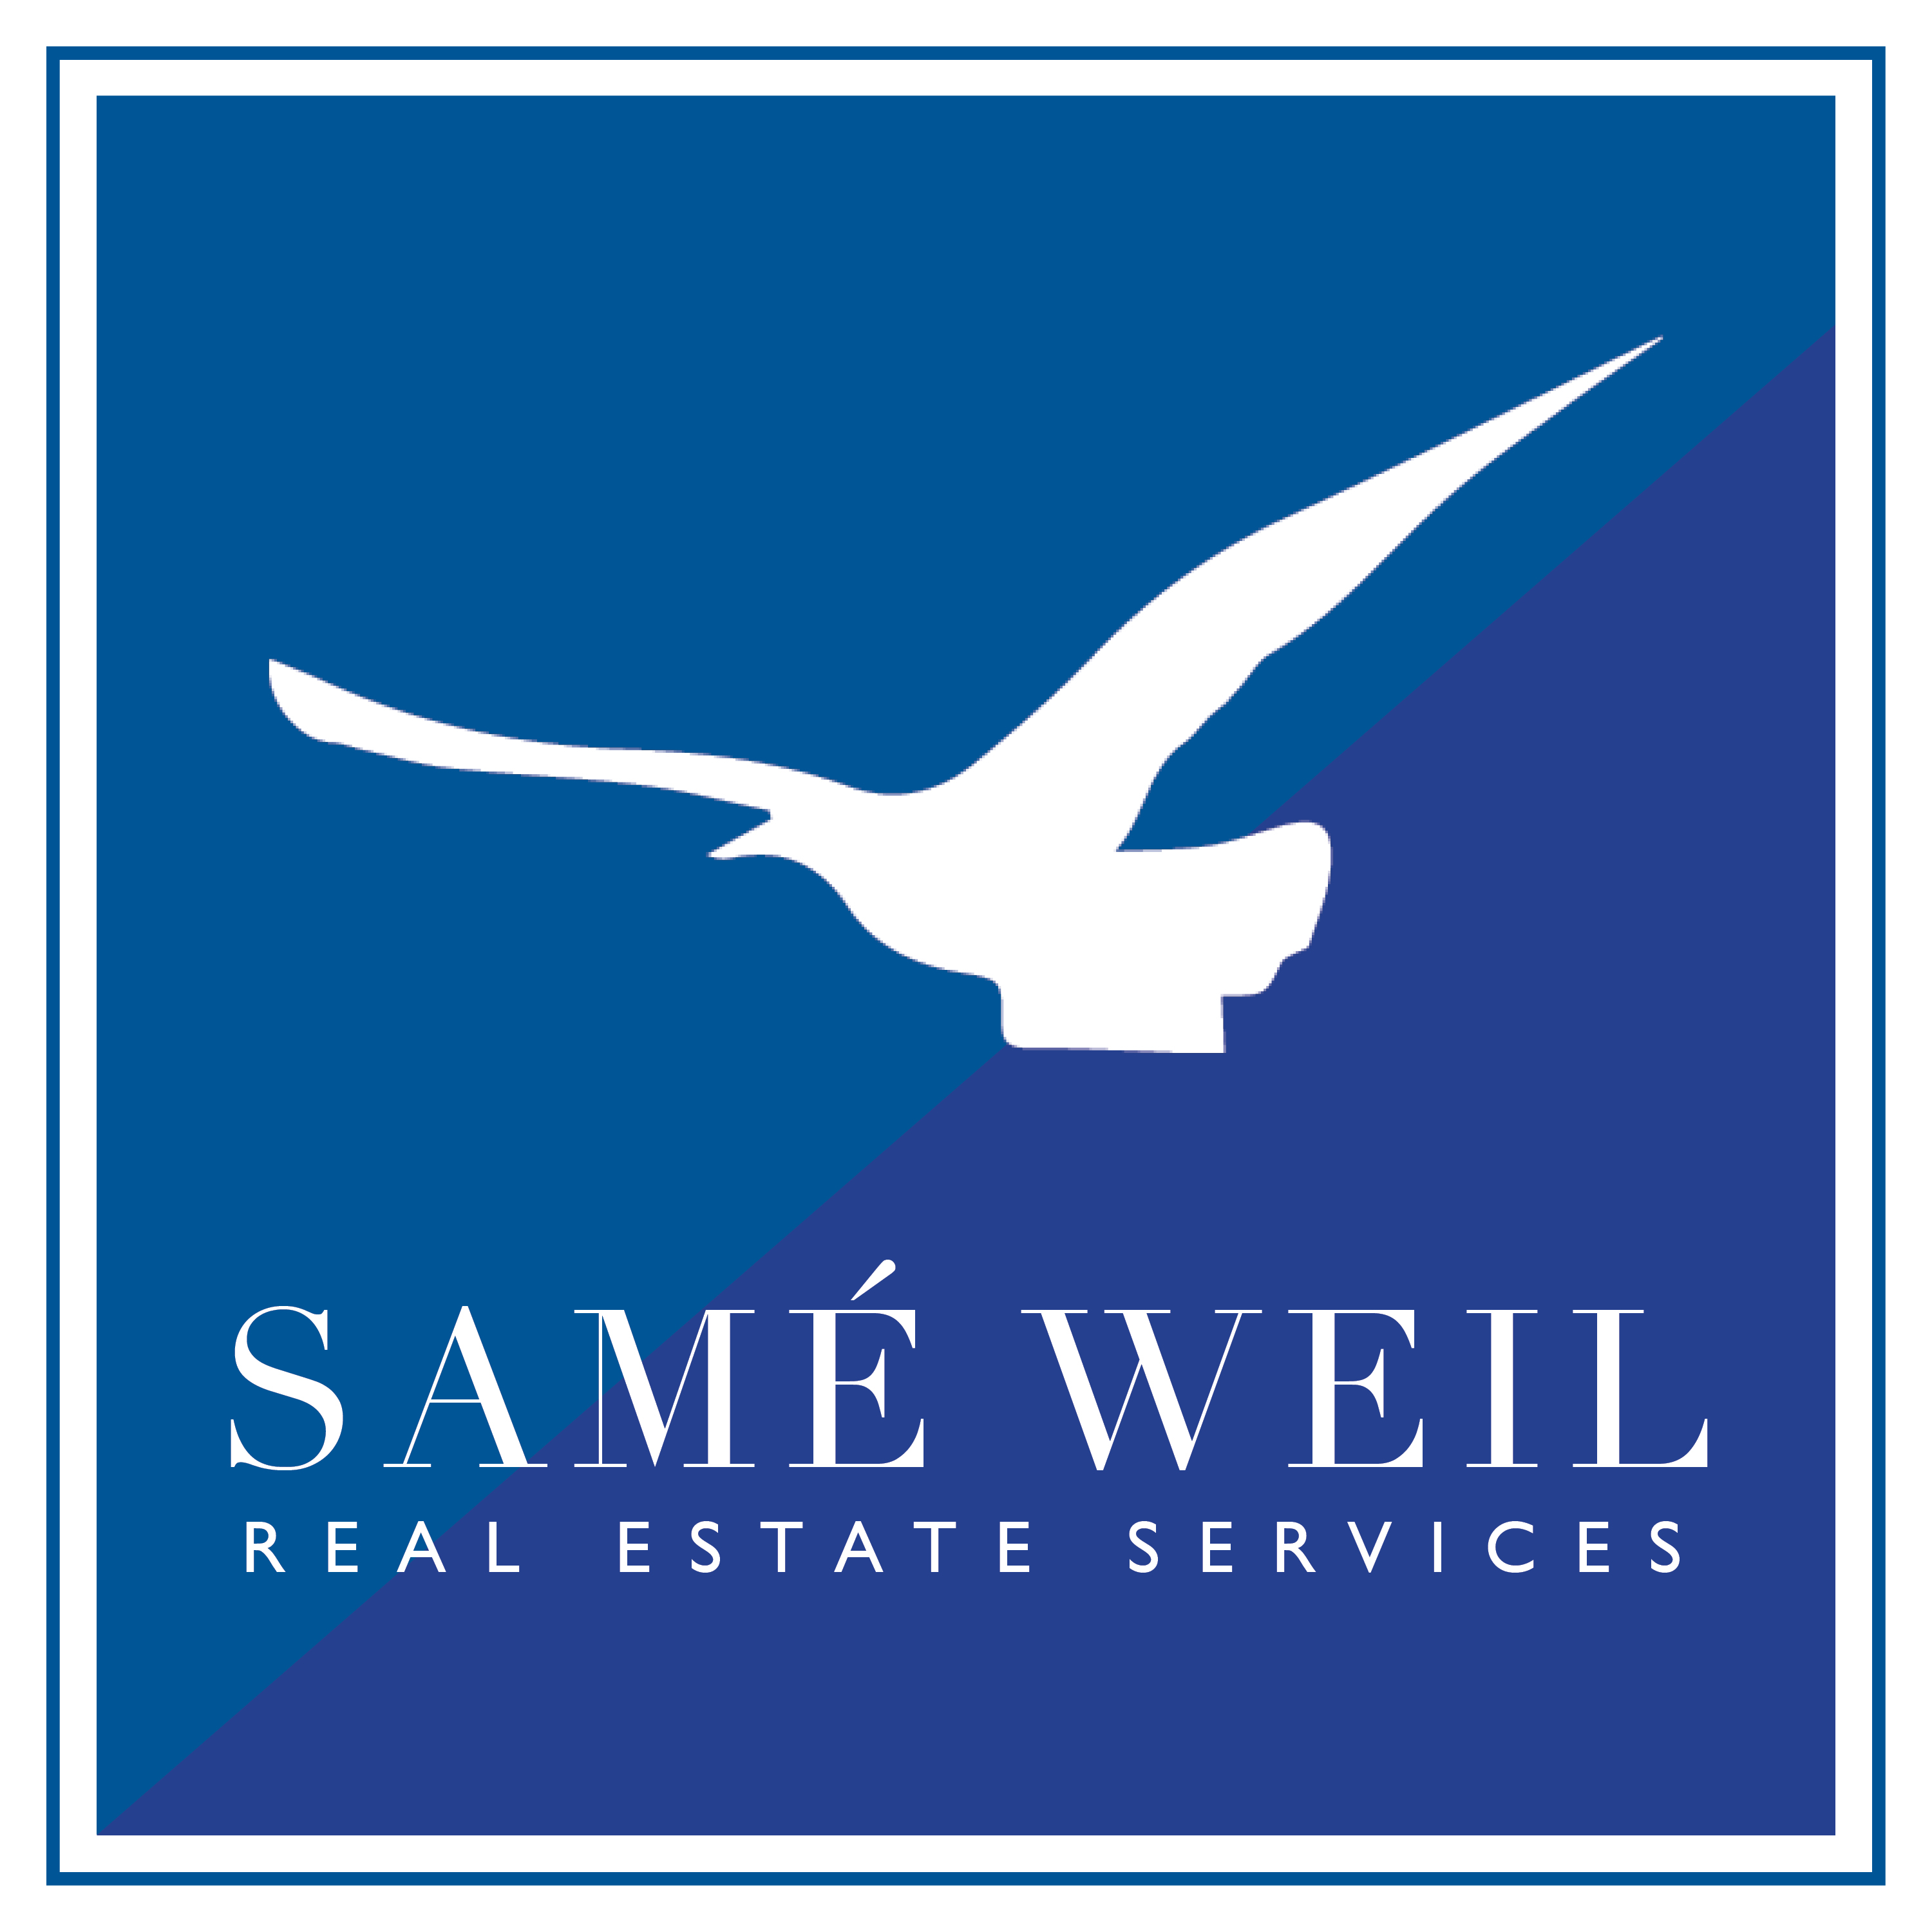 Weil - Real Estate Services